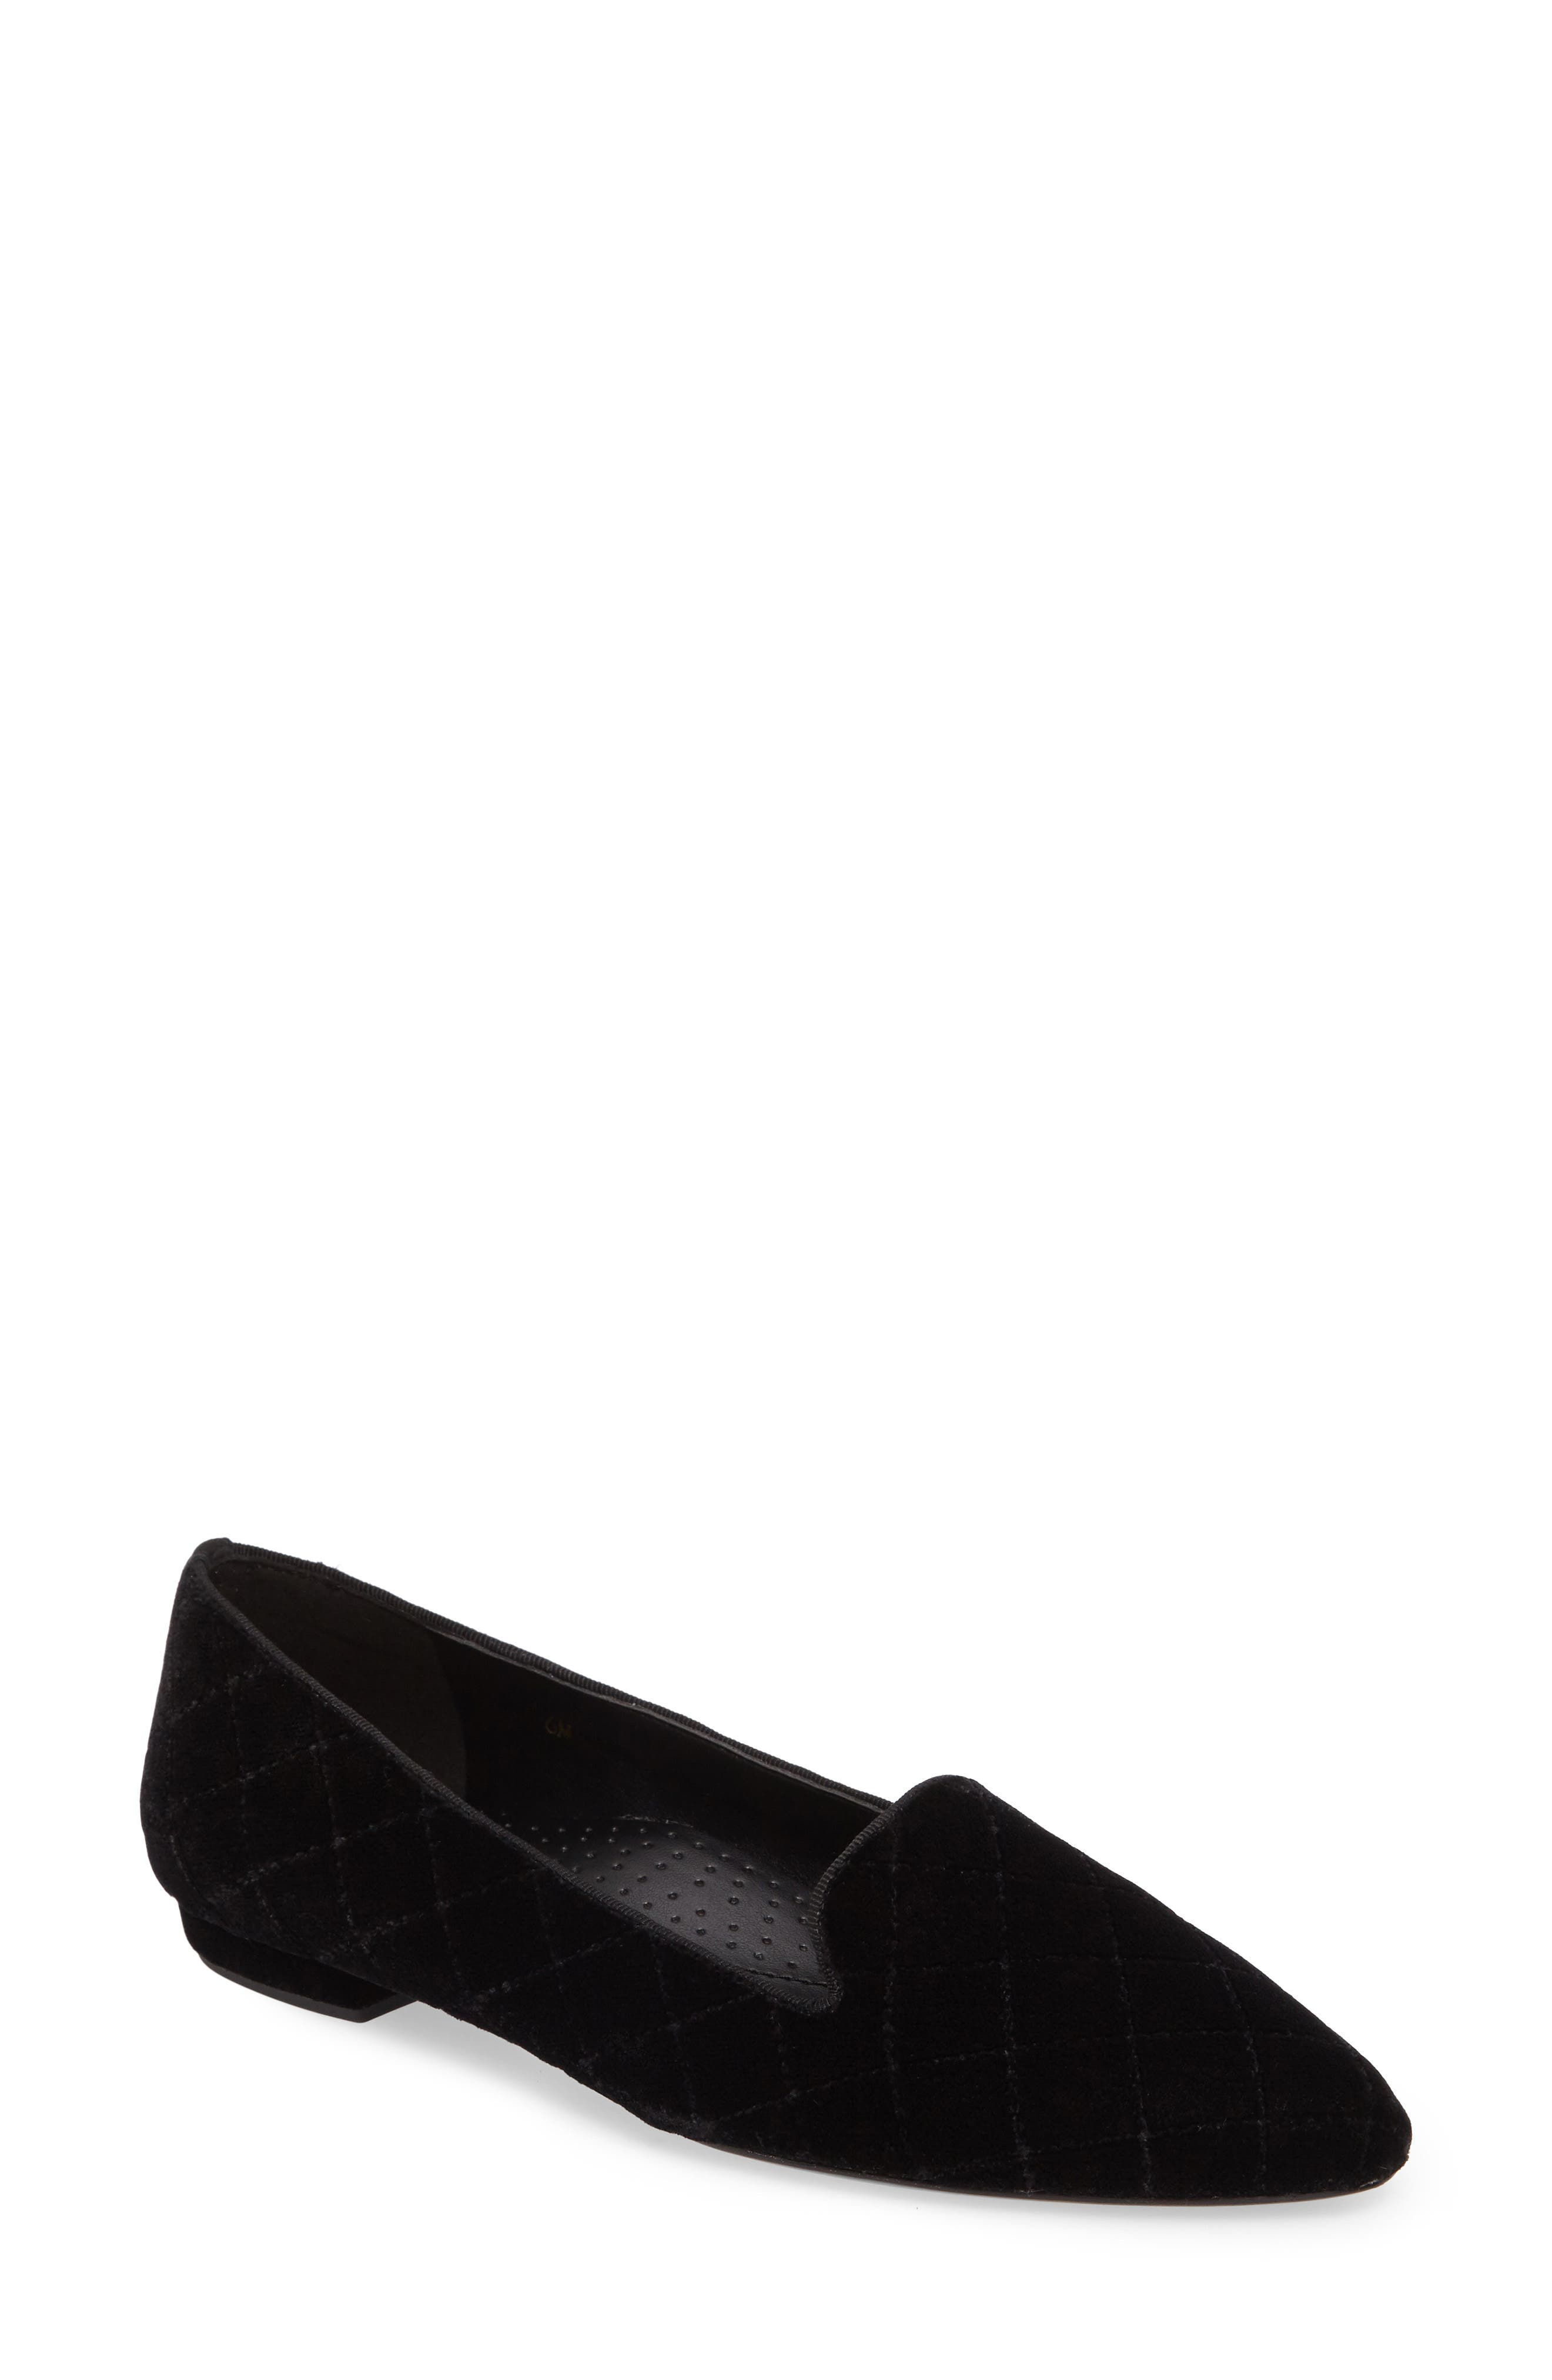 Gannie Diamond Pattern Loafer,                         Main,                         color,